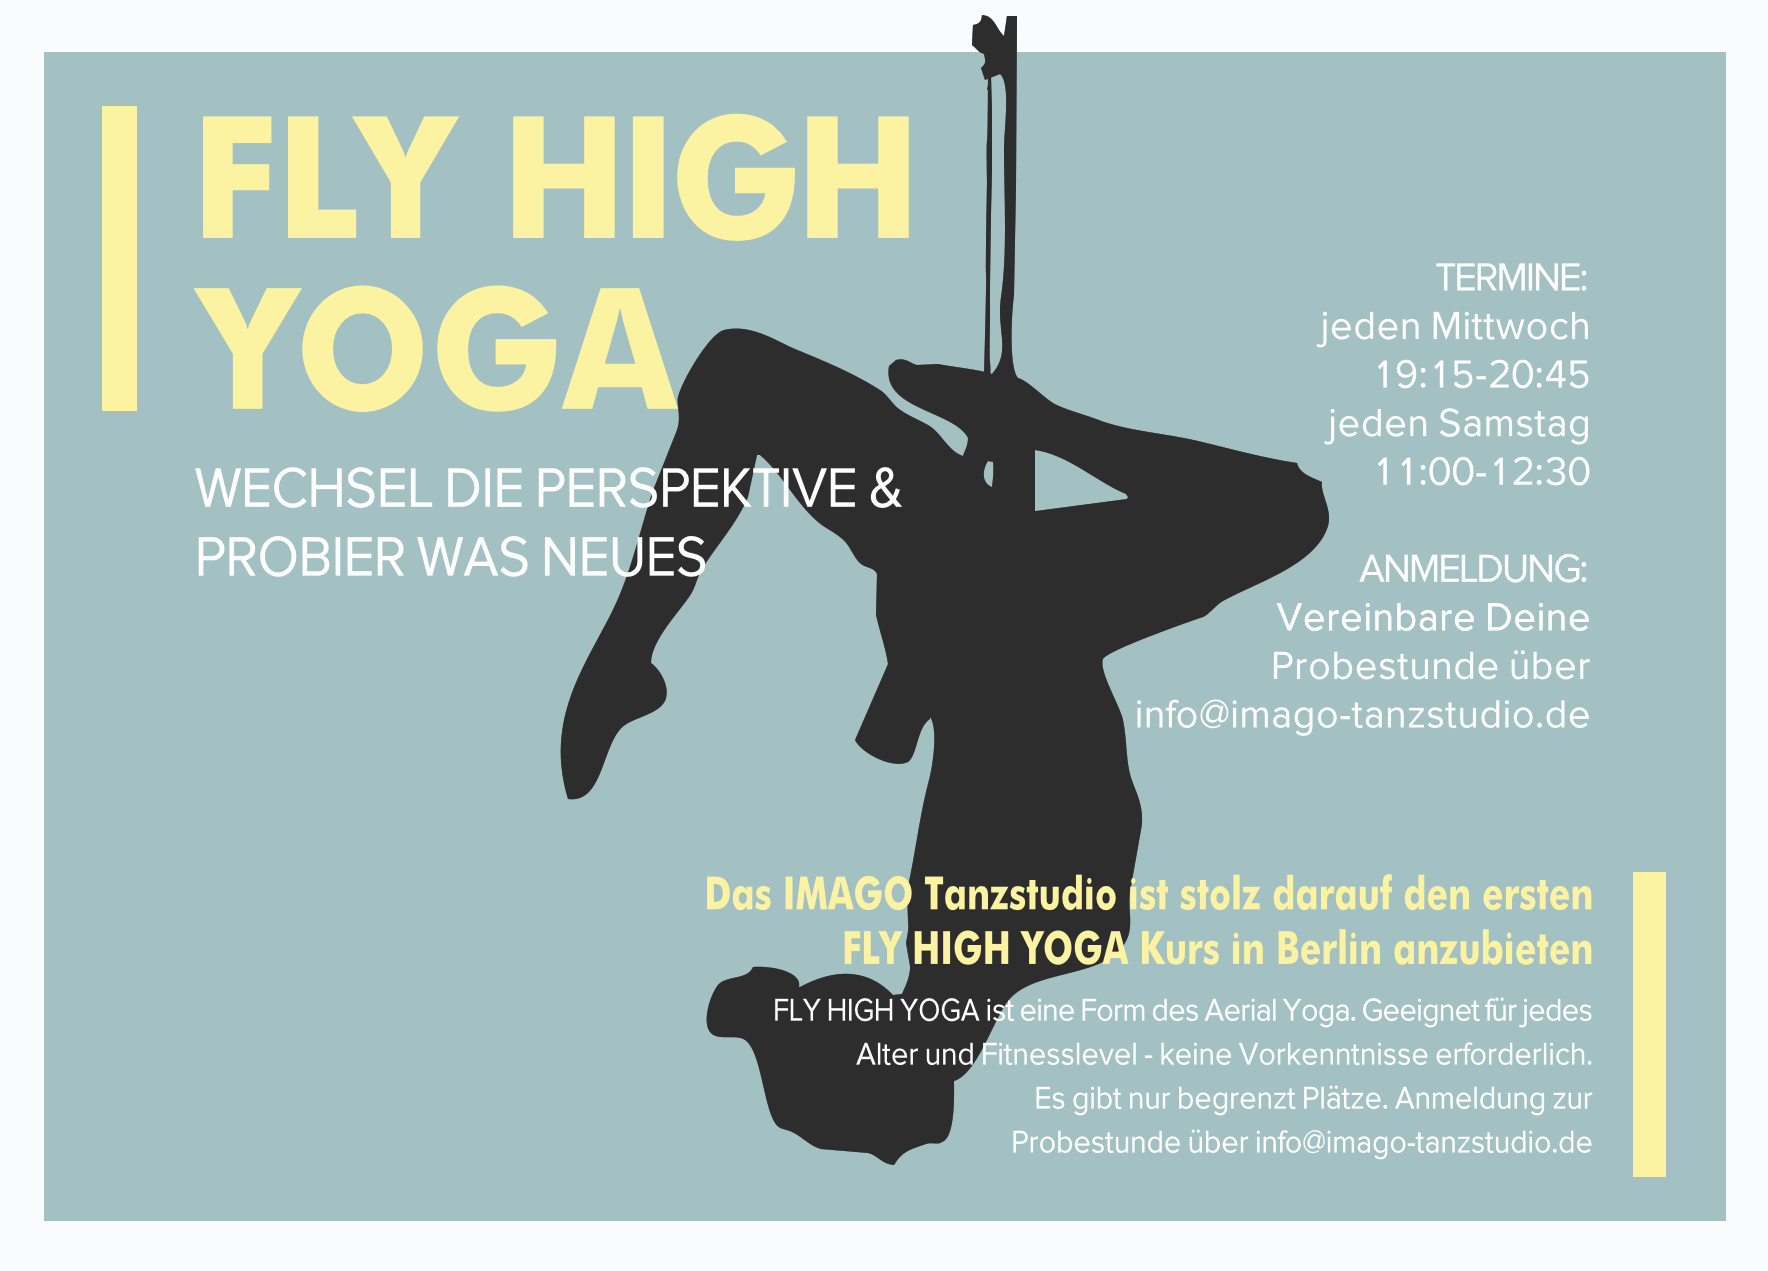 FLYHIGHYOGA.png